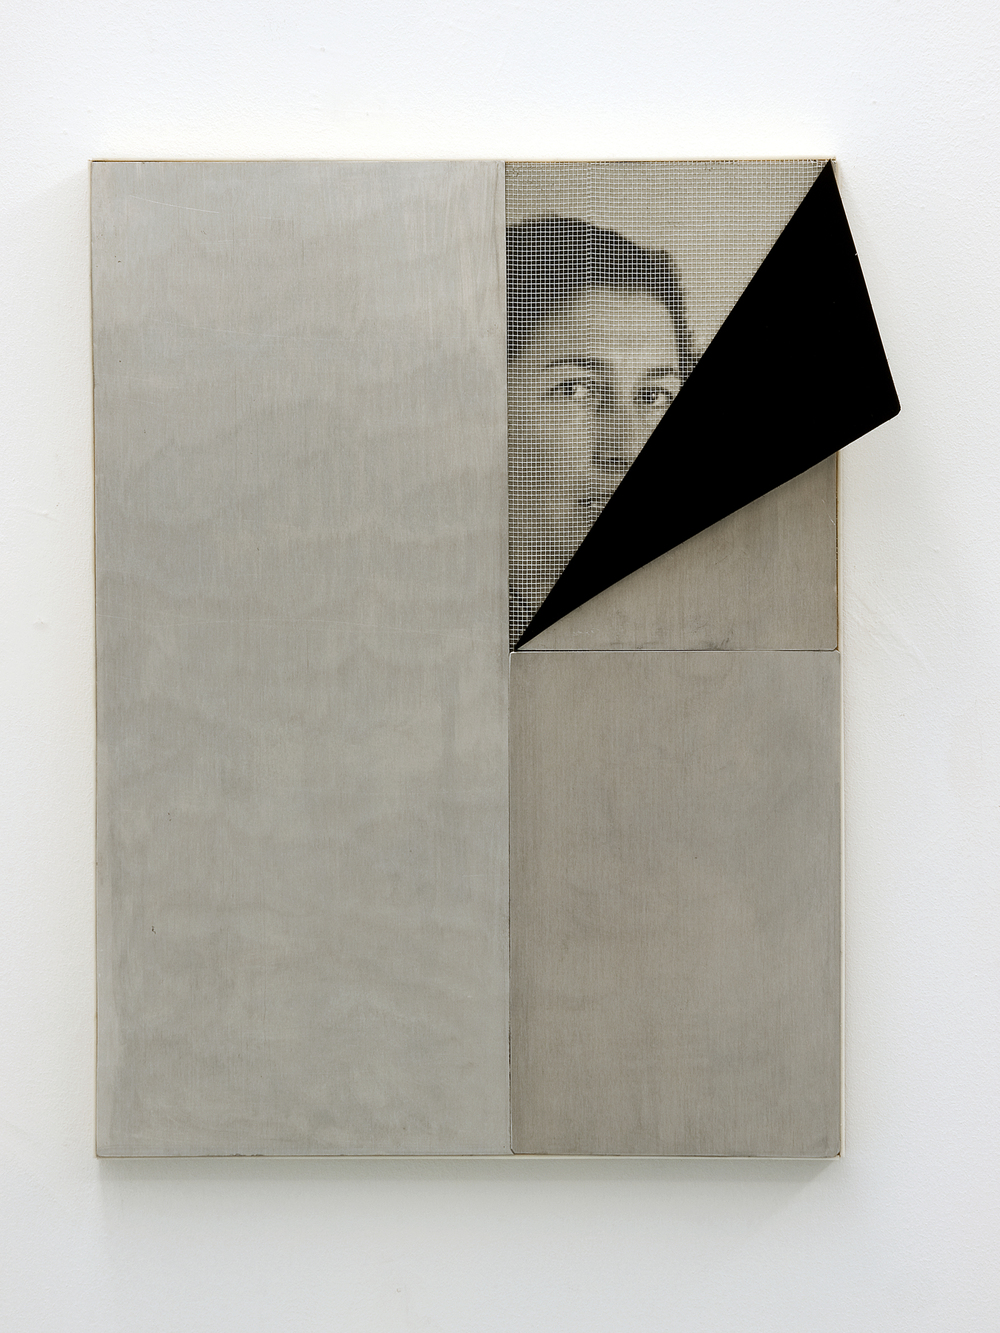 Pablo Jansana © 2012 ,  Fall and fold, Untitled #13 (Gisele Freund) . Epson Ultrachrome Pro 4880, resin,  aluminium, enamel, fiberglass, plexiglass, MDF. 60.5 x 45 x 15.5 cm. Courtesy of the artist.